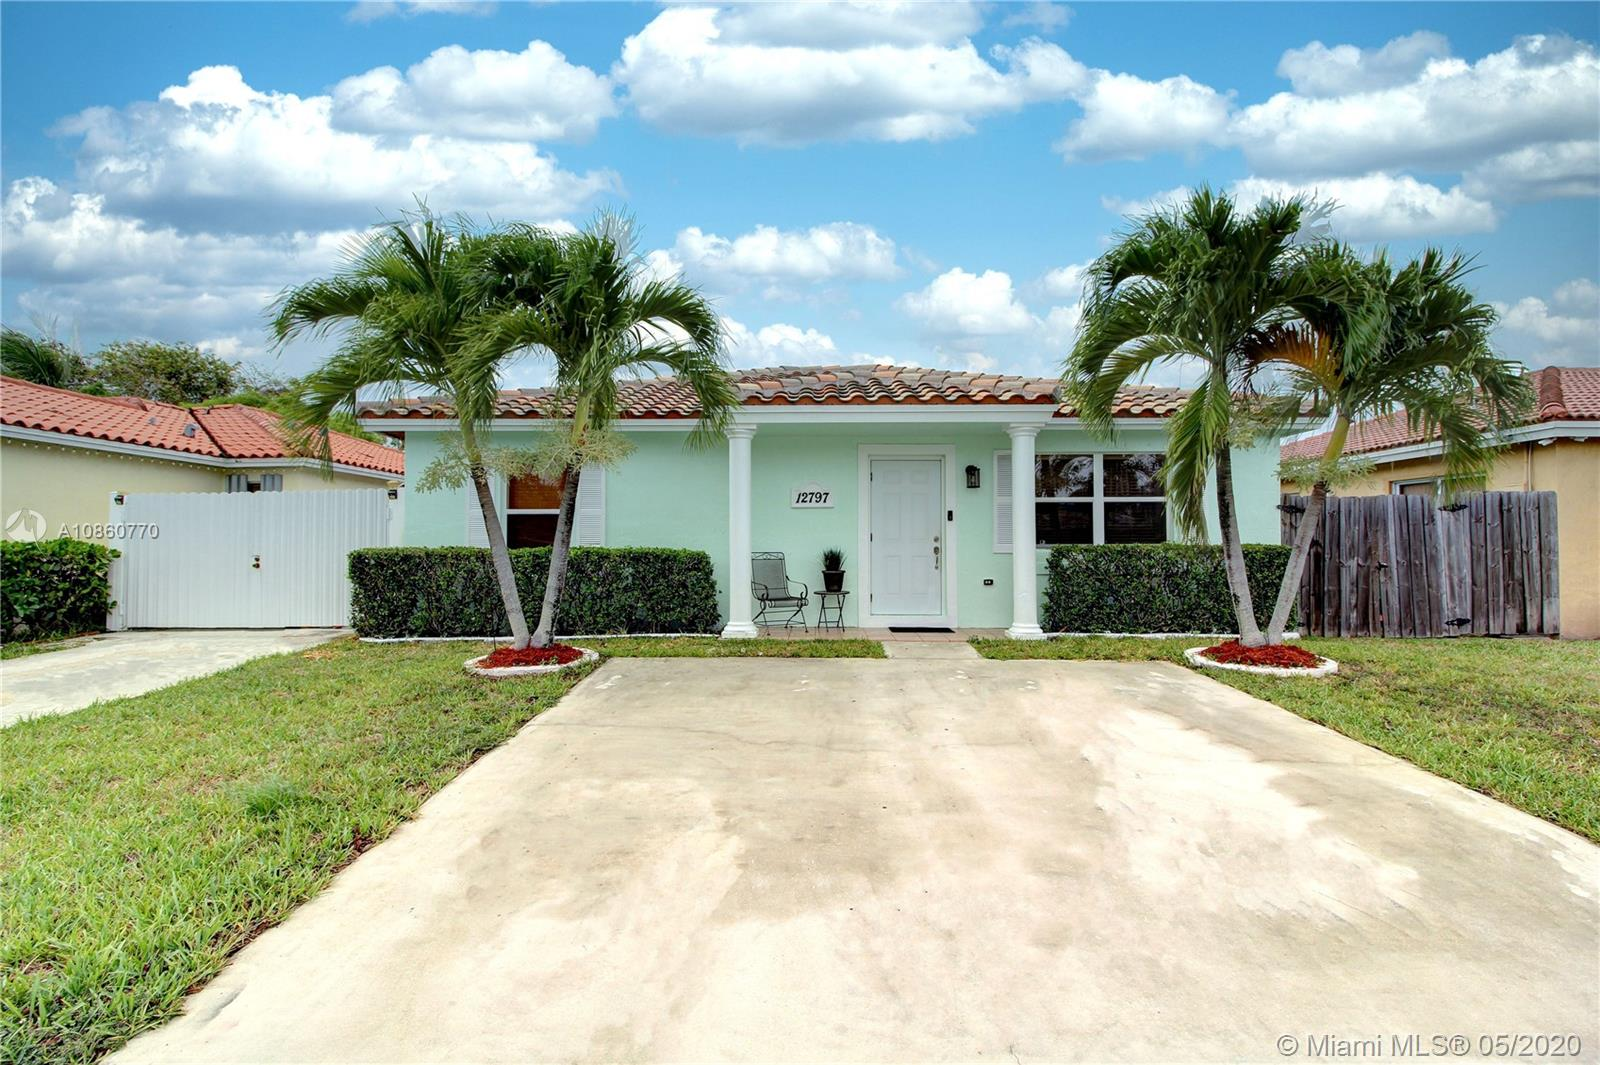 12797 SW 256th Terrace, Homestead, FL 33032 - Homestead, FL real estate listing